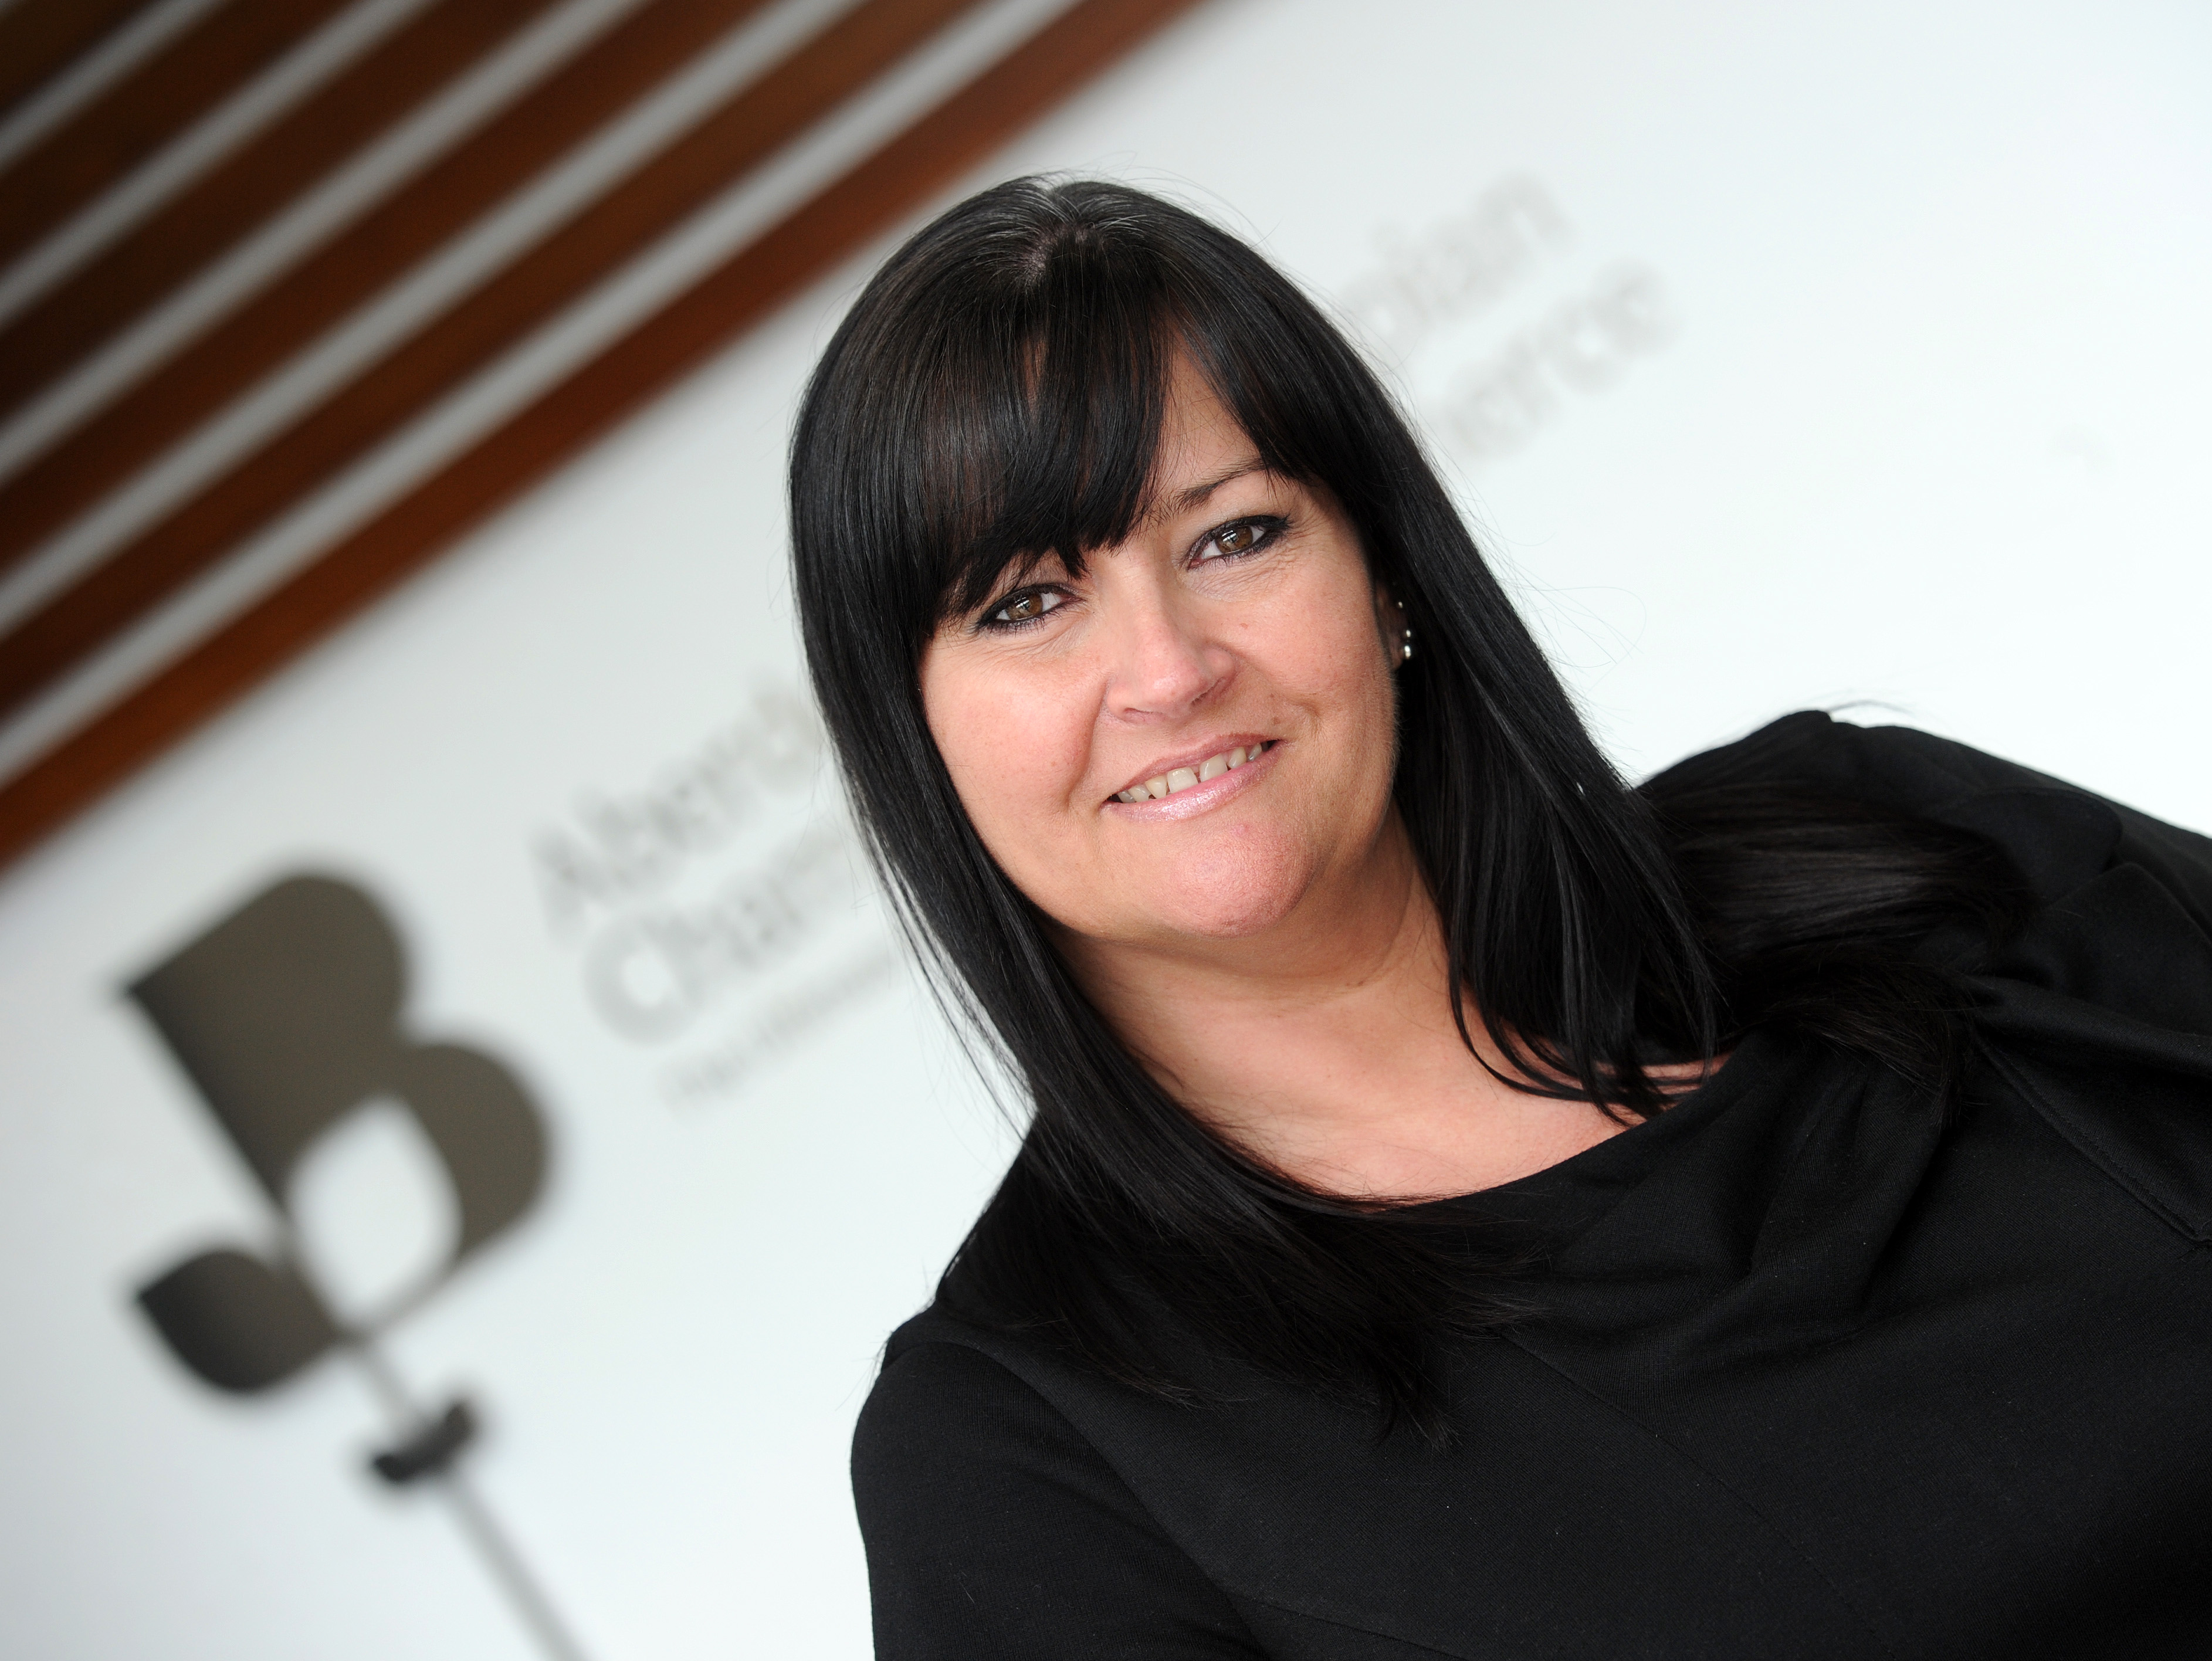 Presented by Seona Shand | Aberdeen & Grampian Chamber of Commerce